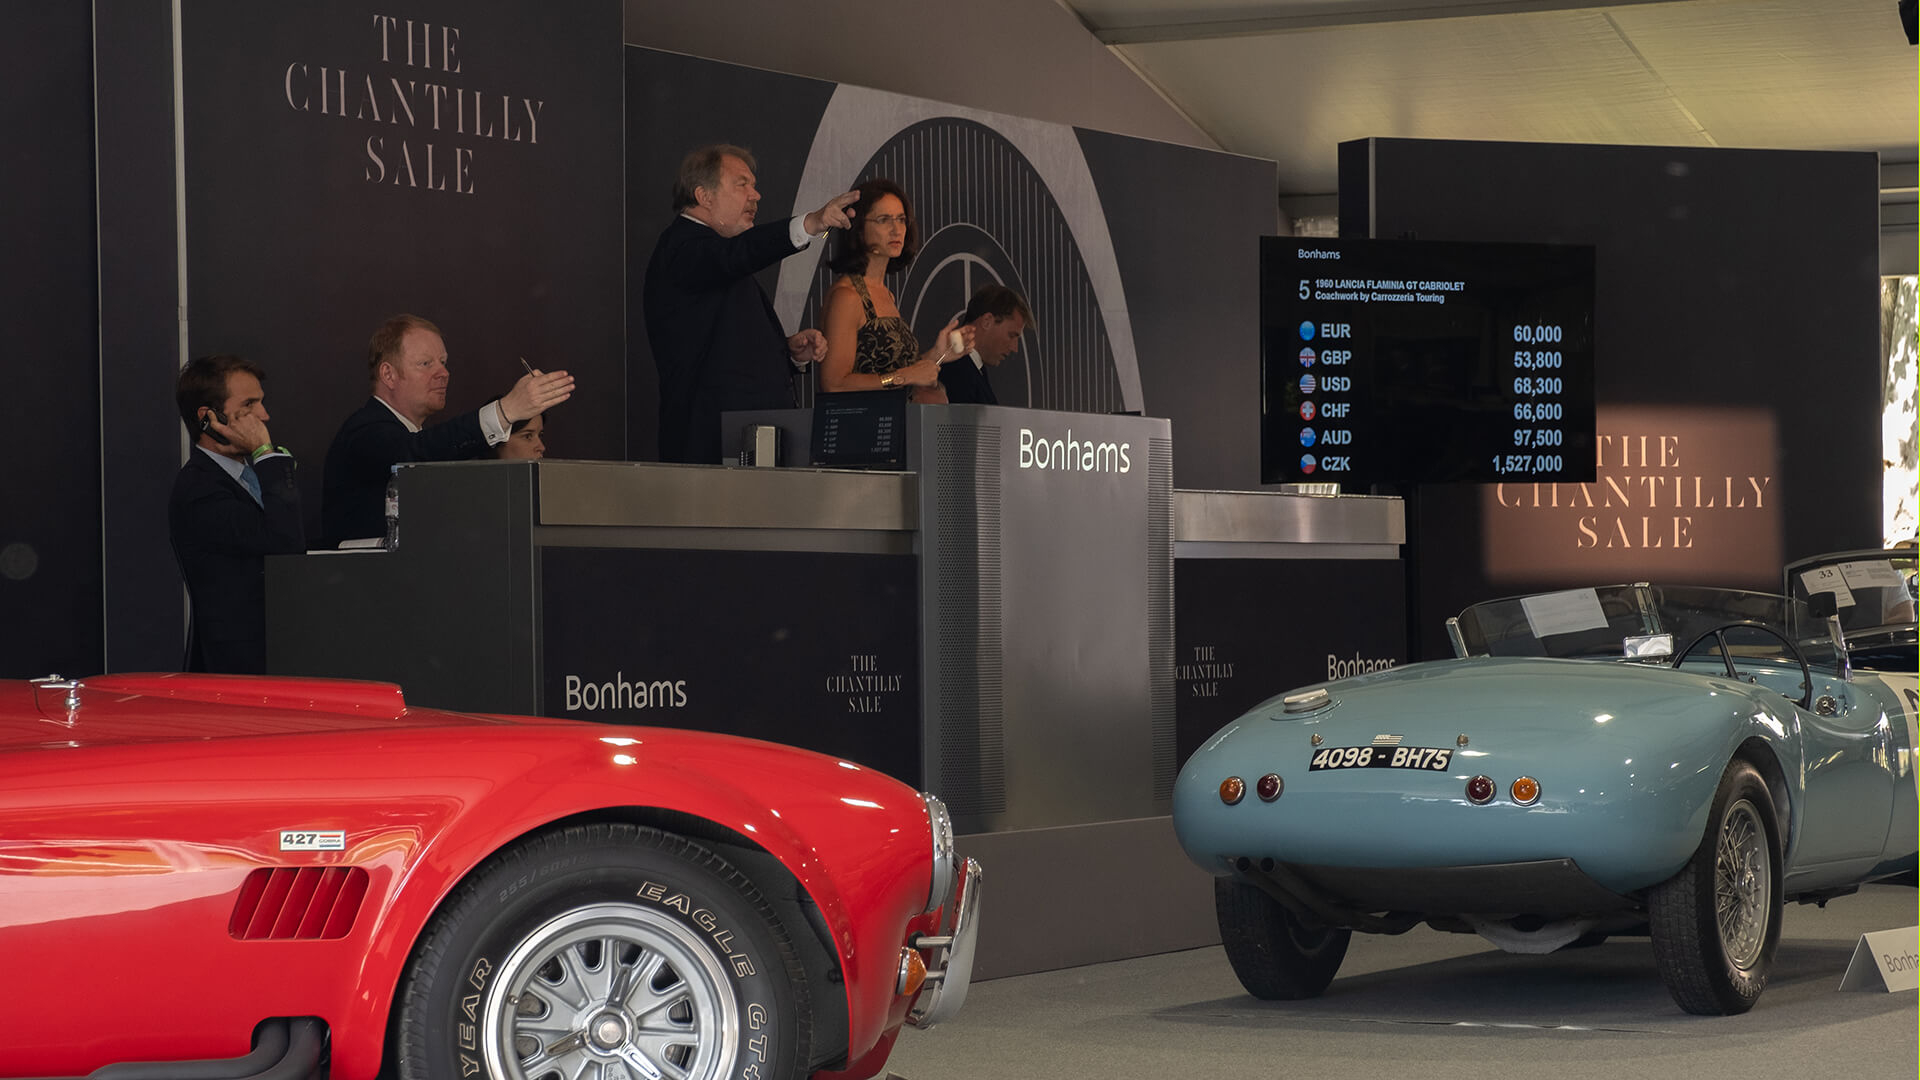 Bonhams takes the heat in Chantilly